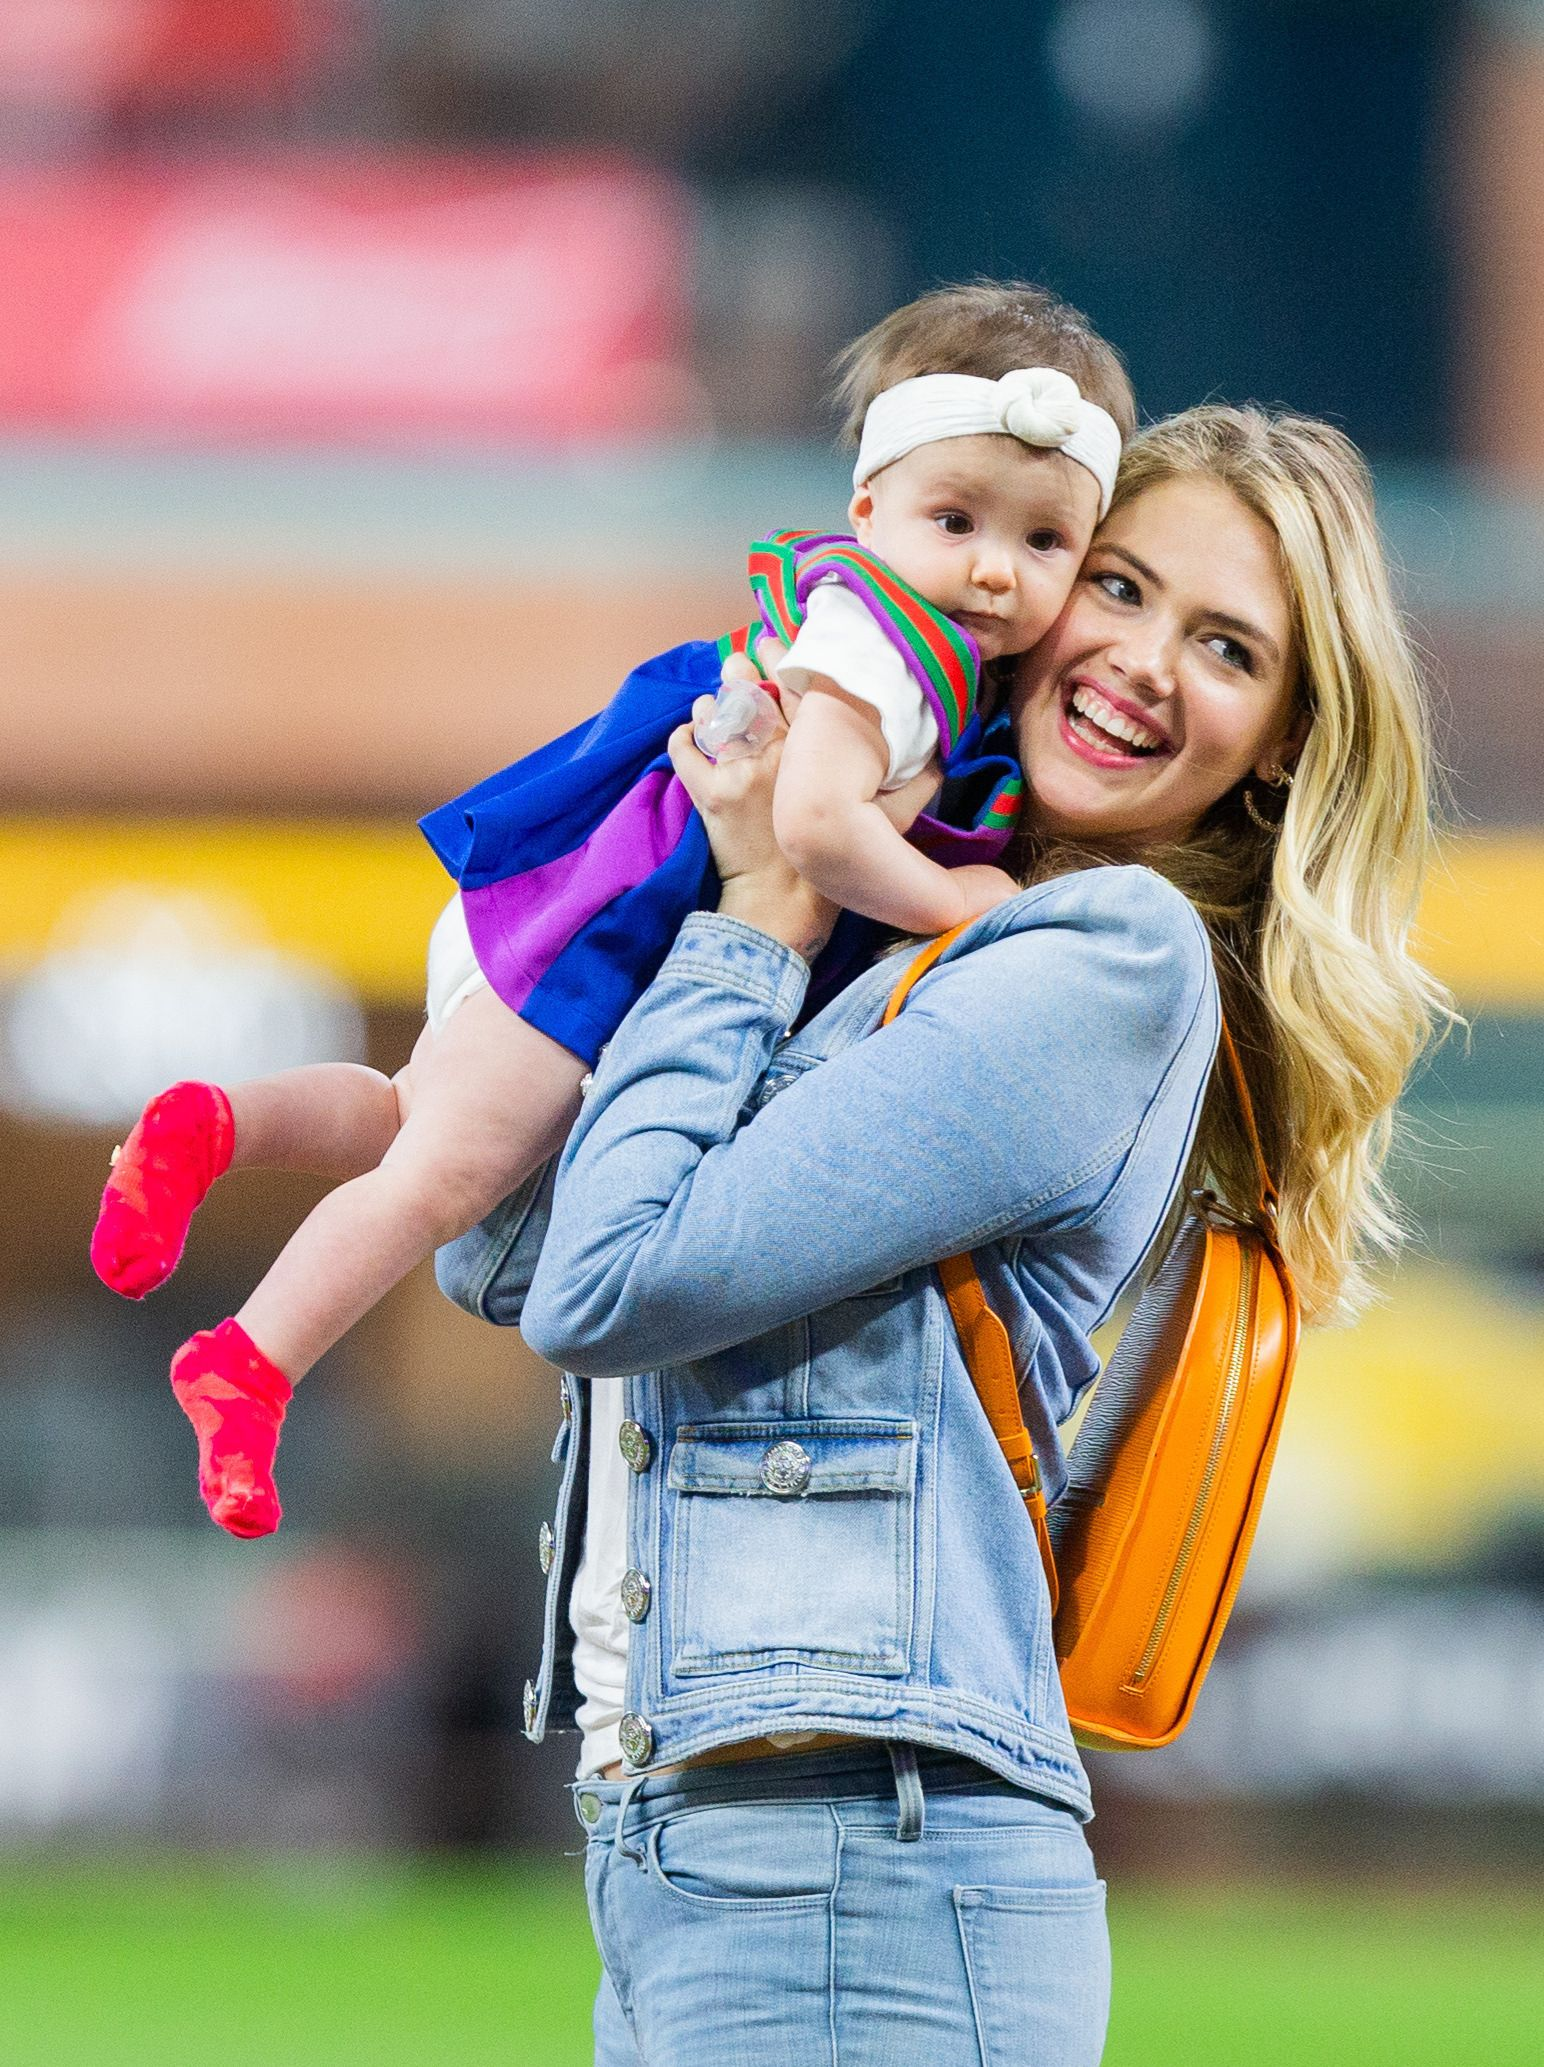 Kate Upton Opens Up About The Pressures of Breastfeeding